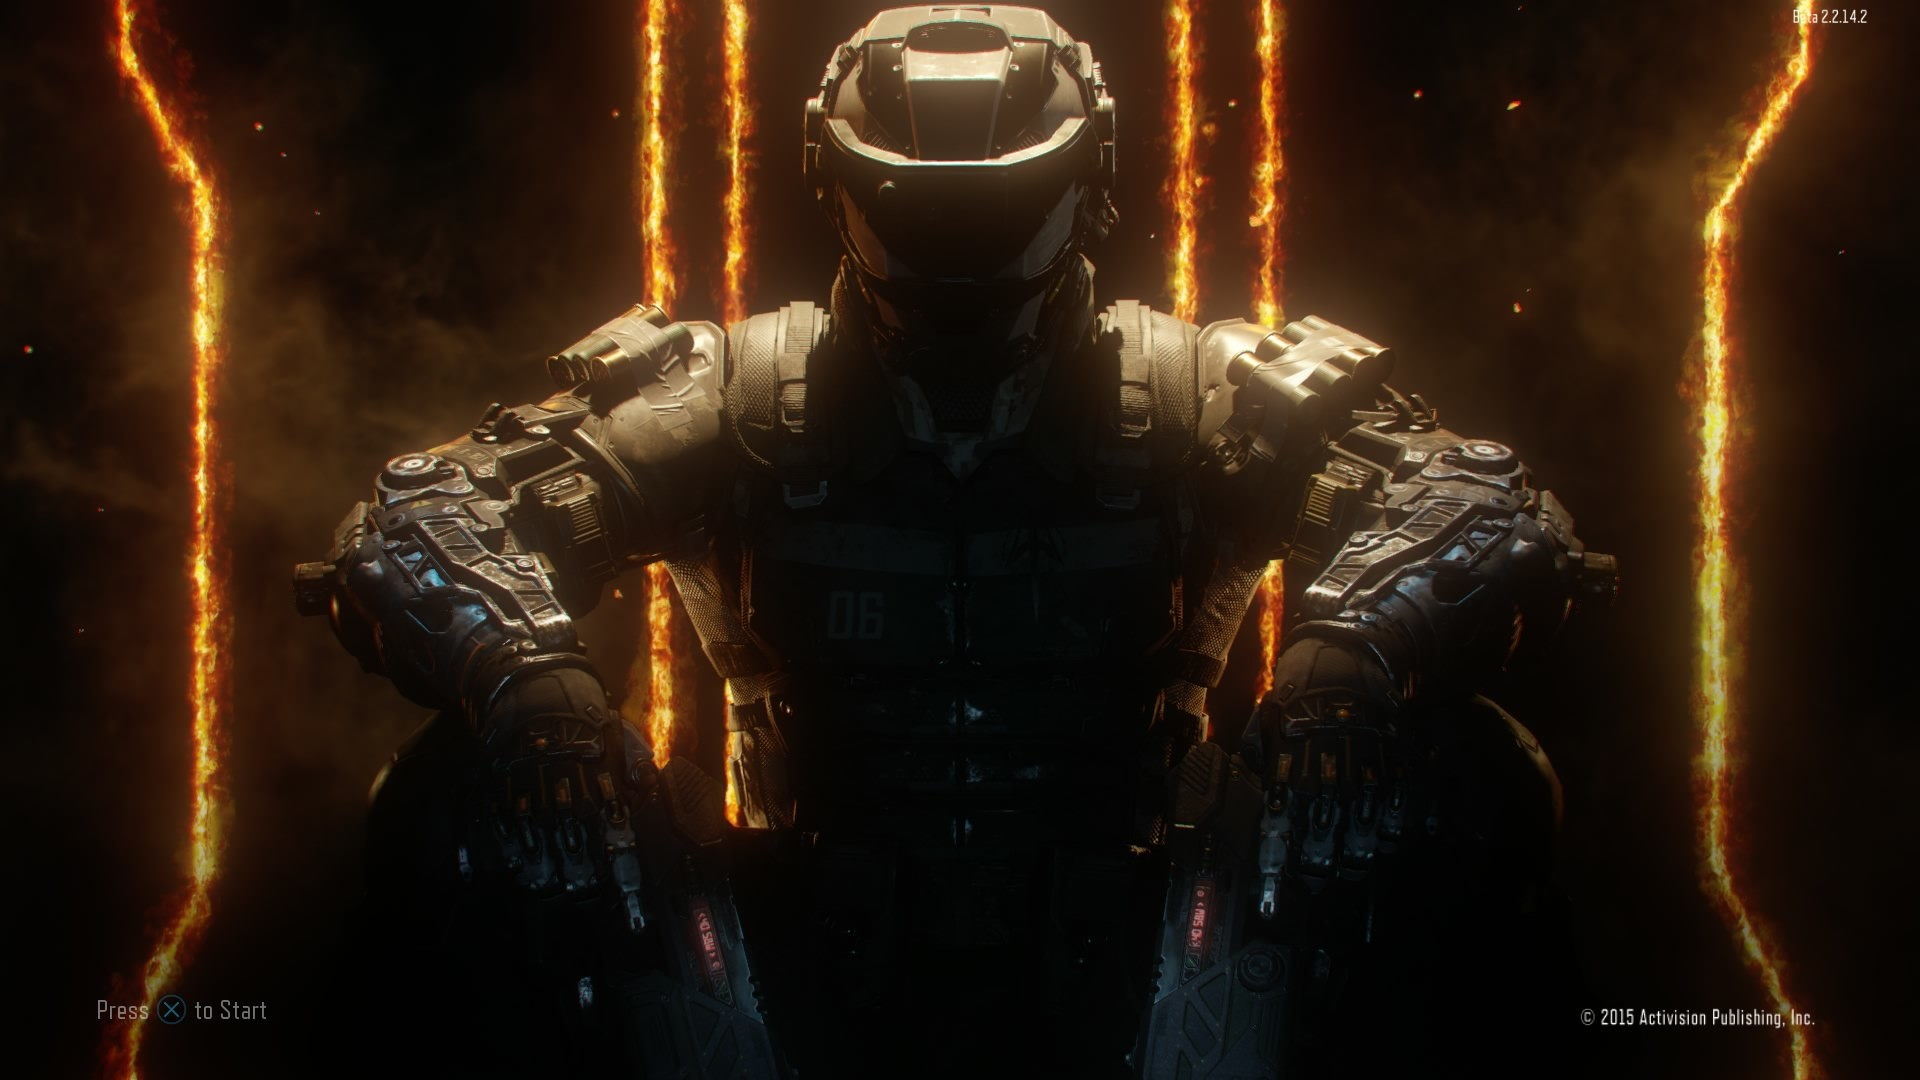 call of duty black ops 3 wallpaper  Black Ops 3 Moving Wallpaper (86  images)